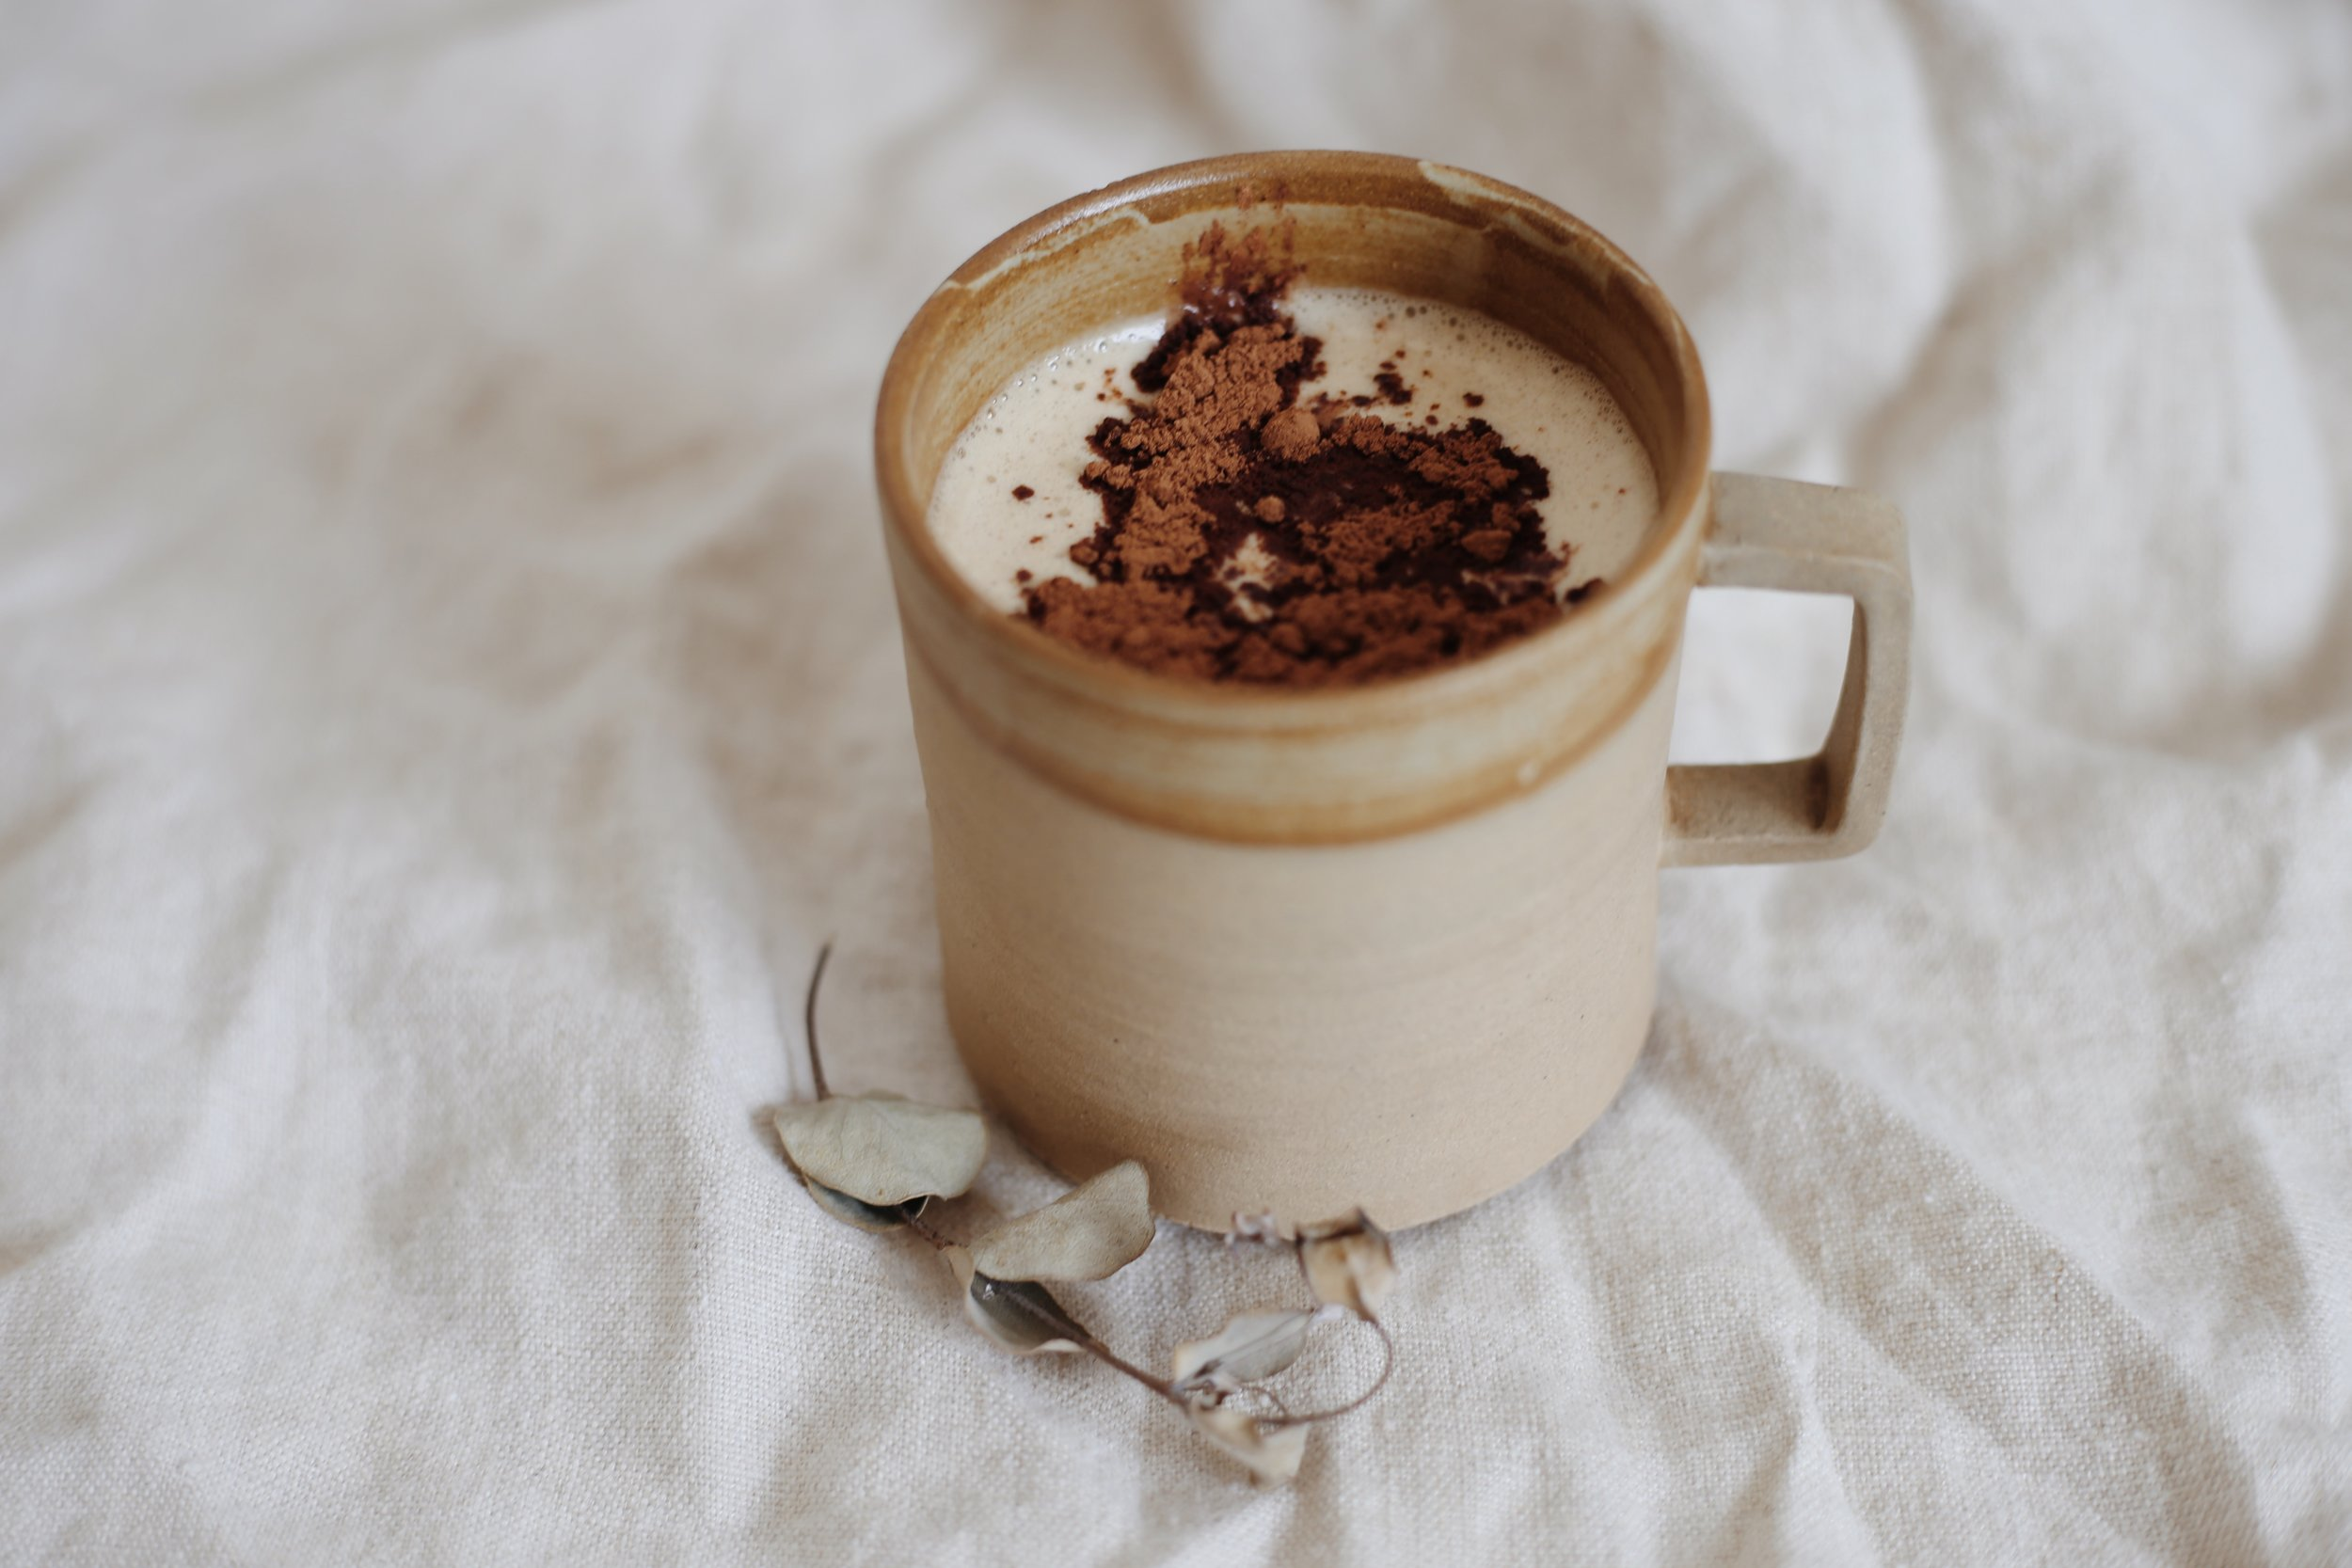 - This caffeine free creamy chai is the perfect cup of comfort. I chose dandelion chai mix for the liver supportive and gallbladder nourishing properties. It's dairy free, sugar free, gluten free, vegan & keto approved